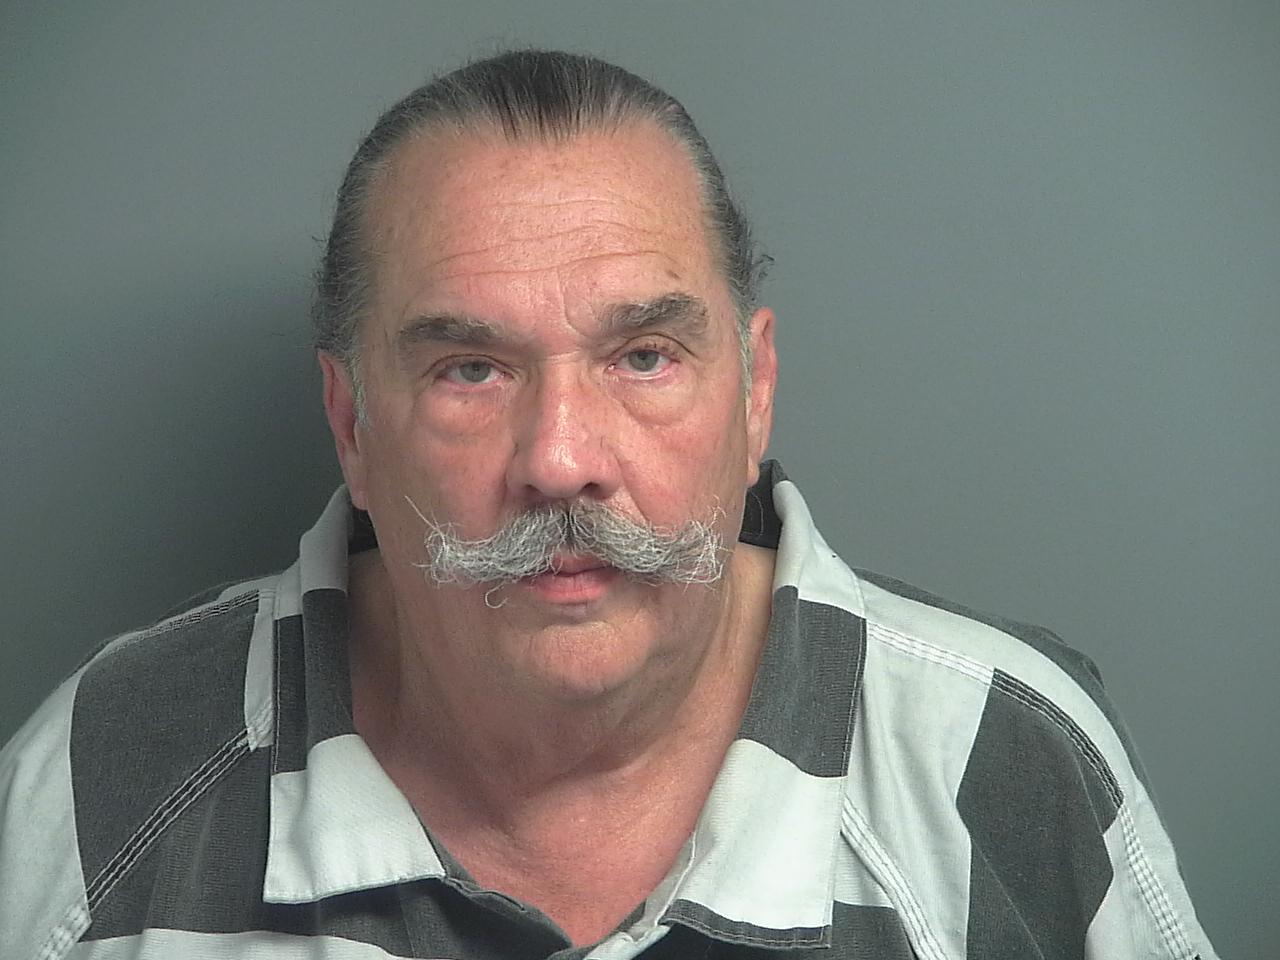 OWNER OF CONROE DAIRY FARM  WHERE OVER 200 HORSES WERE SEIZED TURNS HIMSELF IN TO START HIS SENTENCE